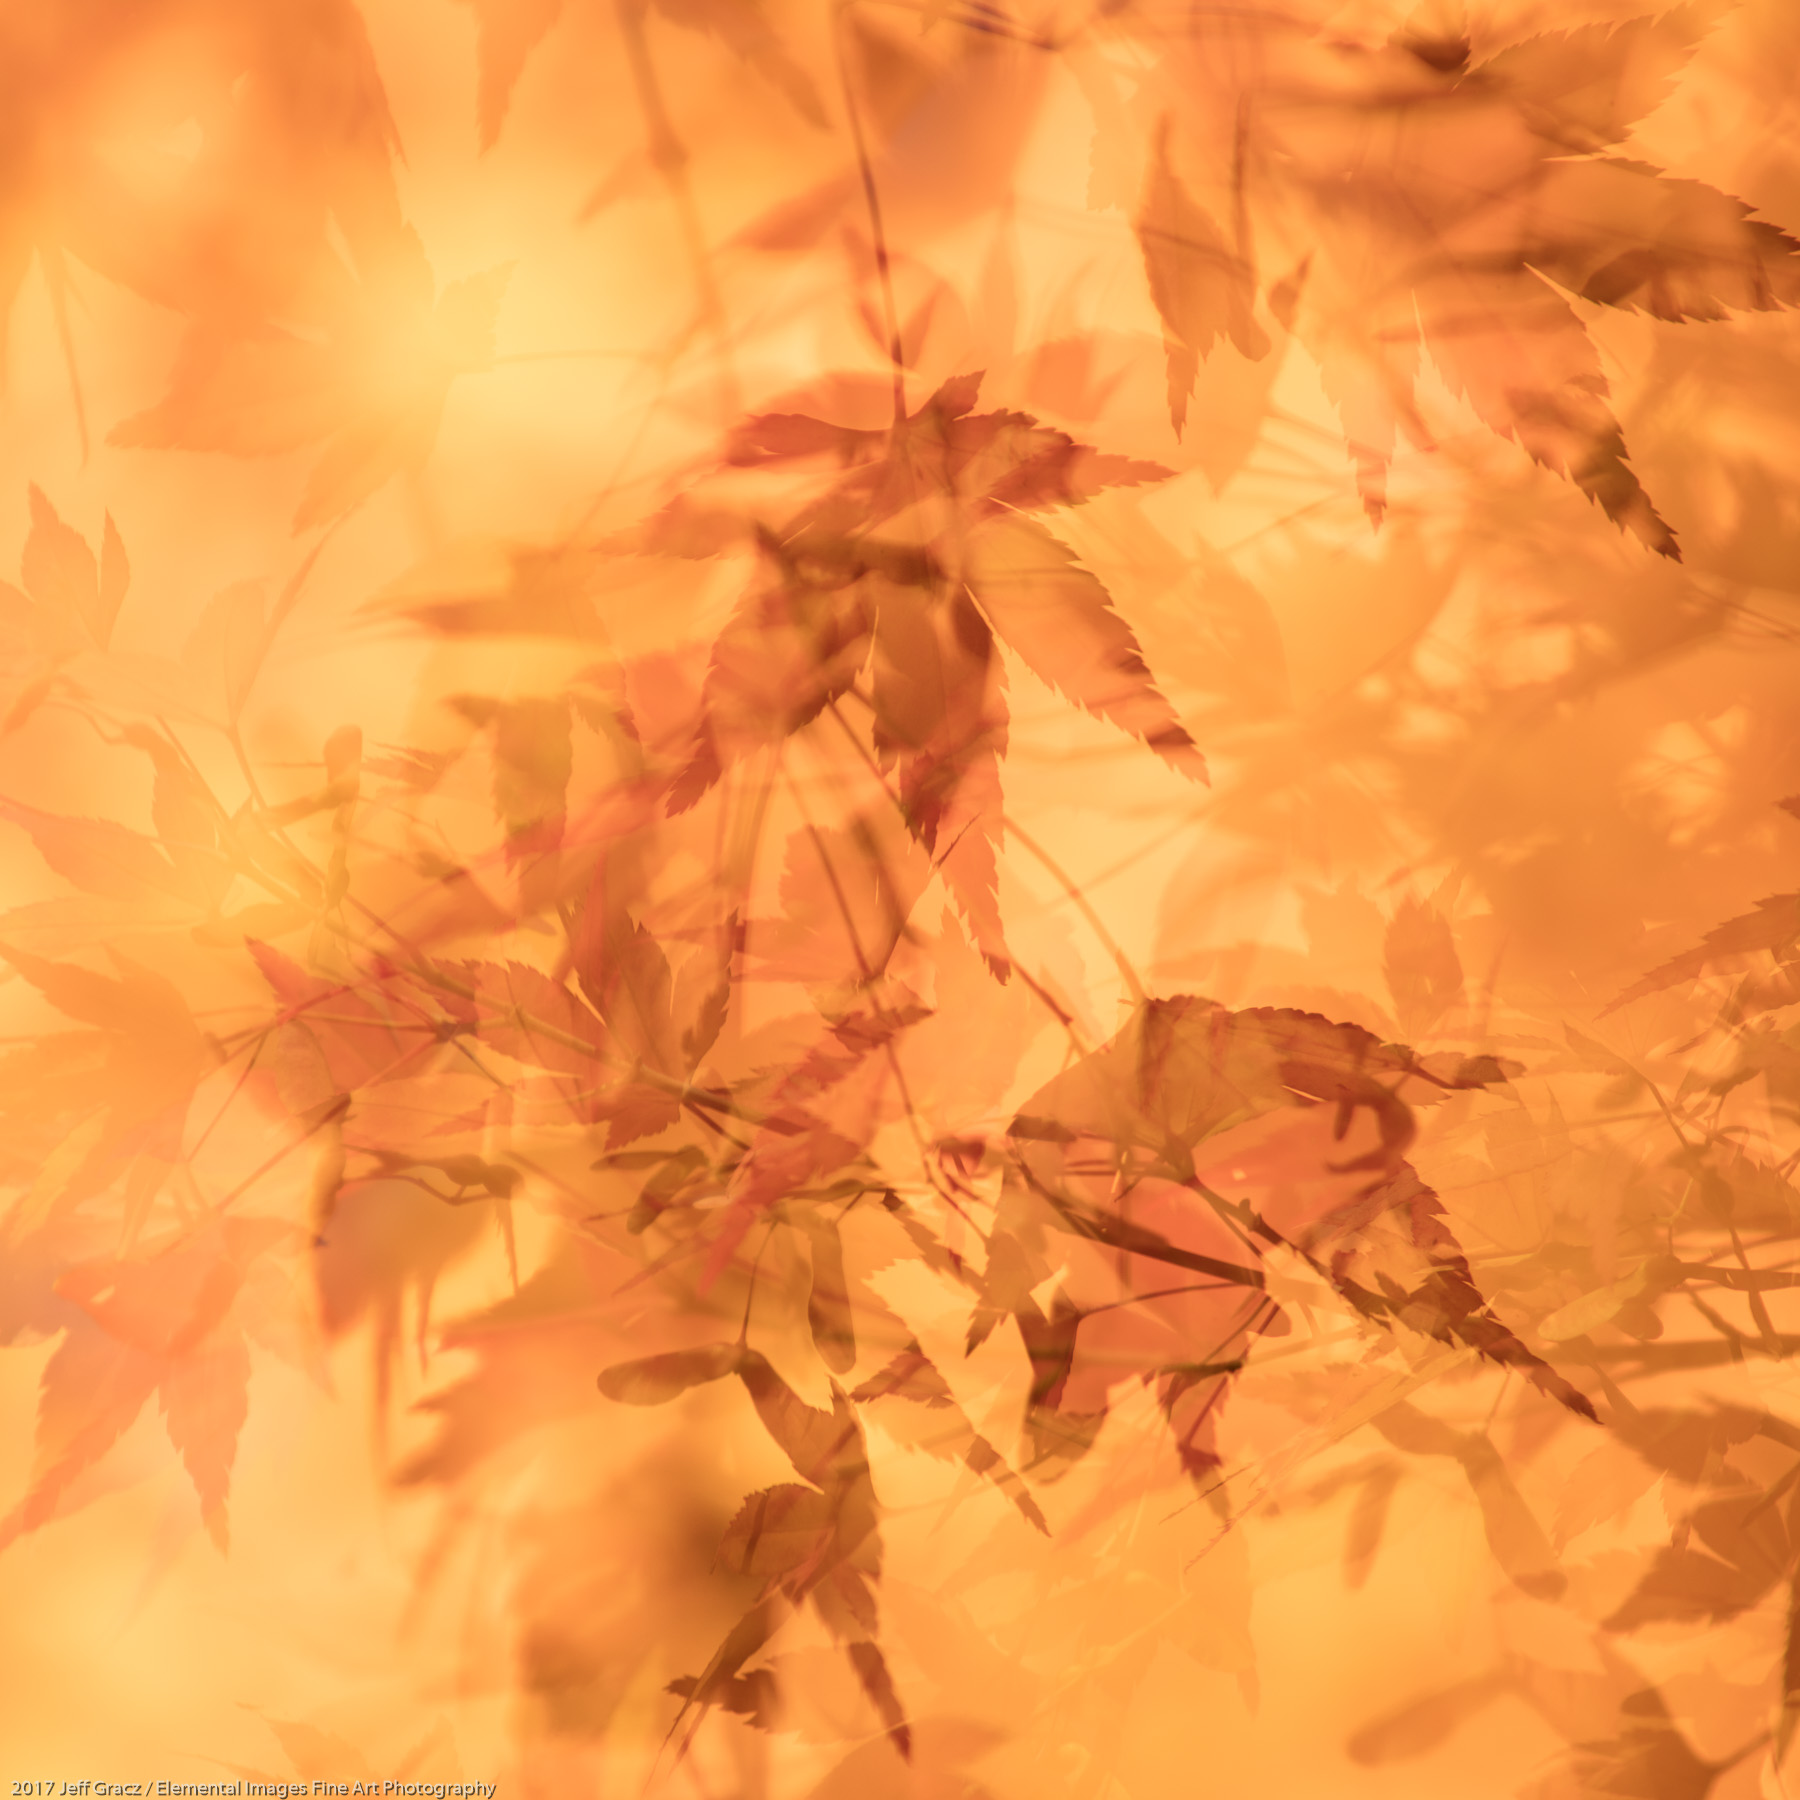 Leaves #155 | Portland | OR | USA - © 2017 Jeff Gracz / Elemental Images Fine Art Photography - All Rights Reserved Worldwide